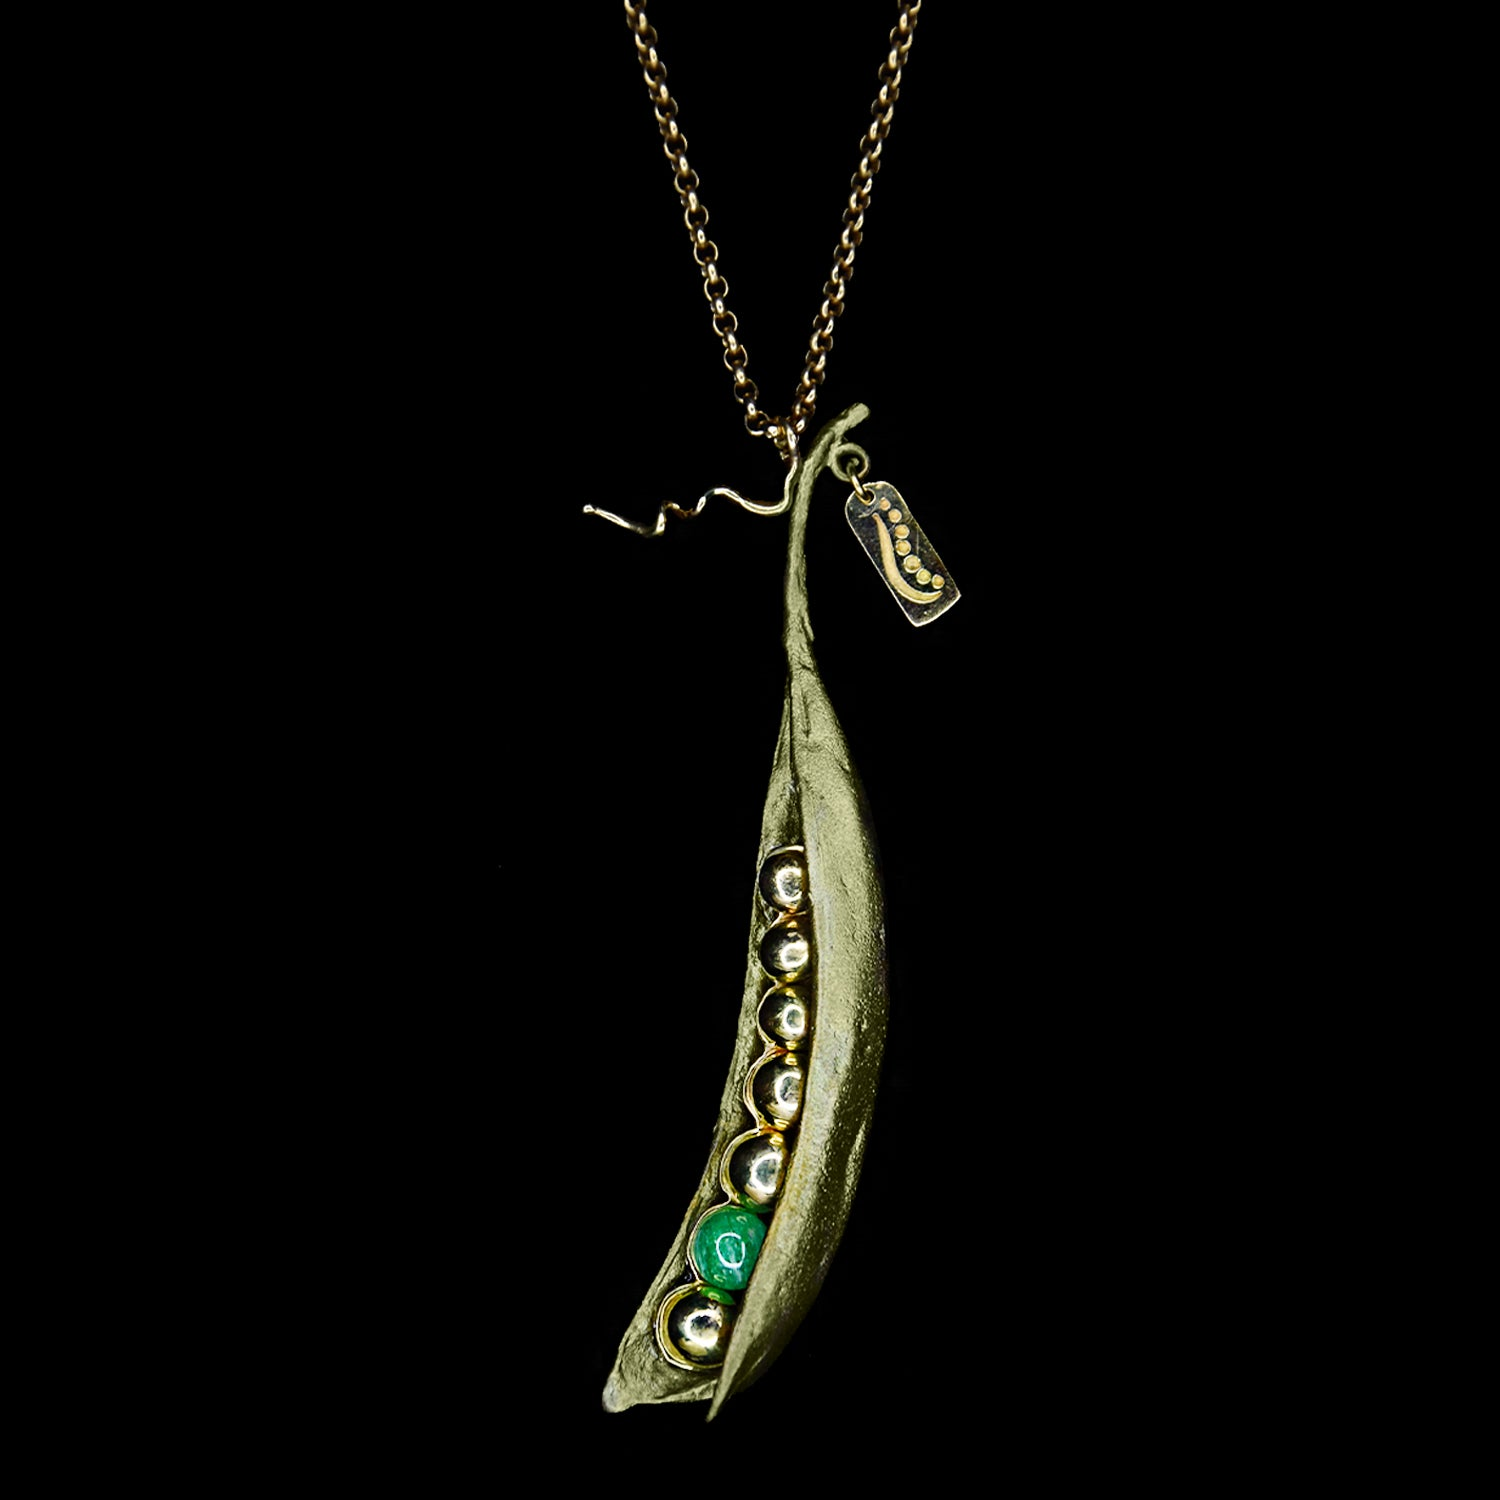 Pea Pod Pendant - Emerald with 6 Gold Peas